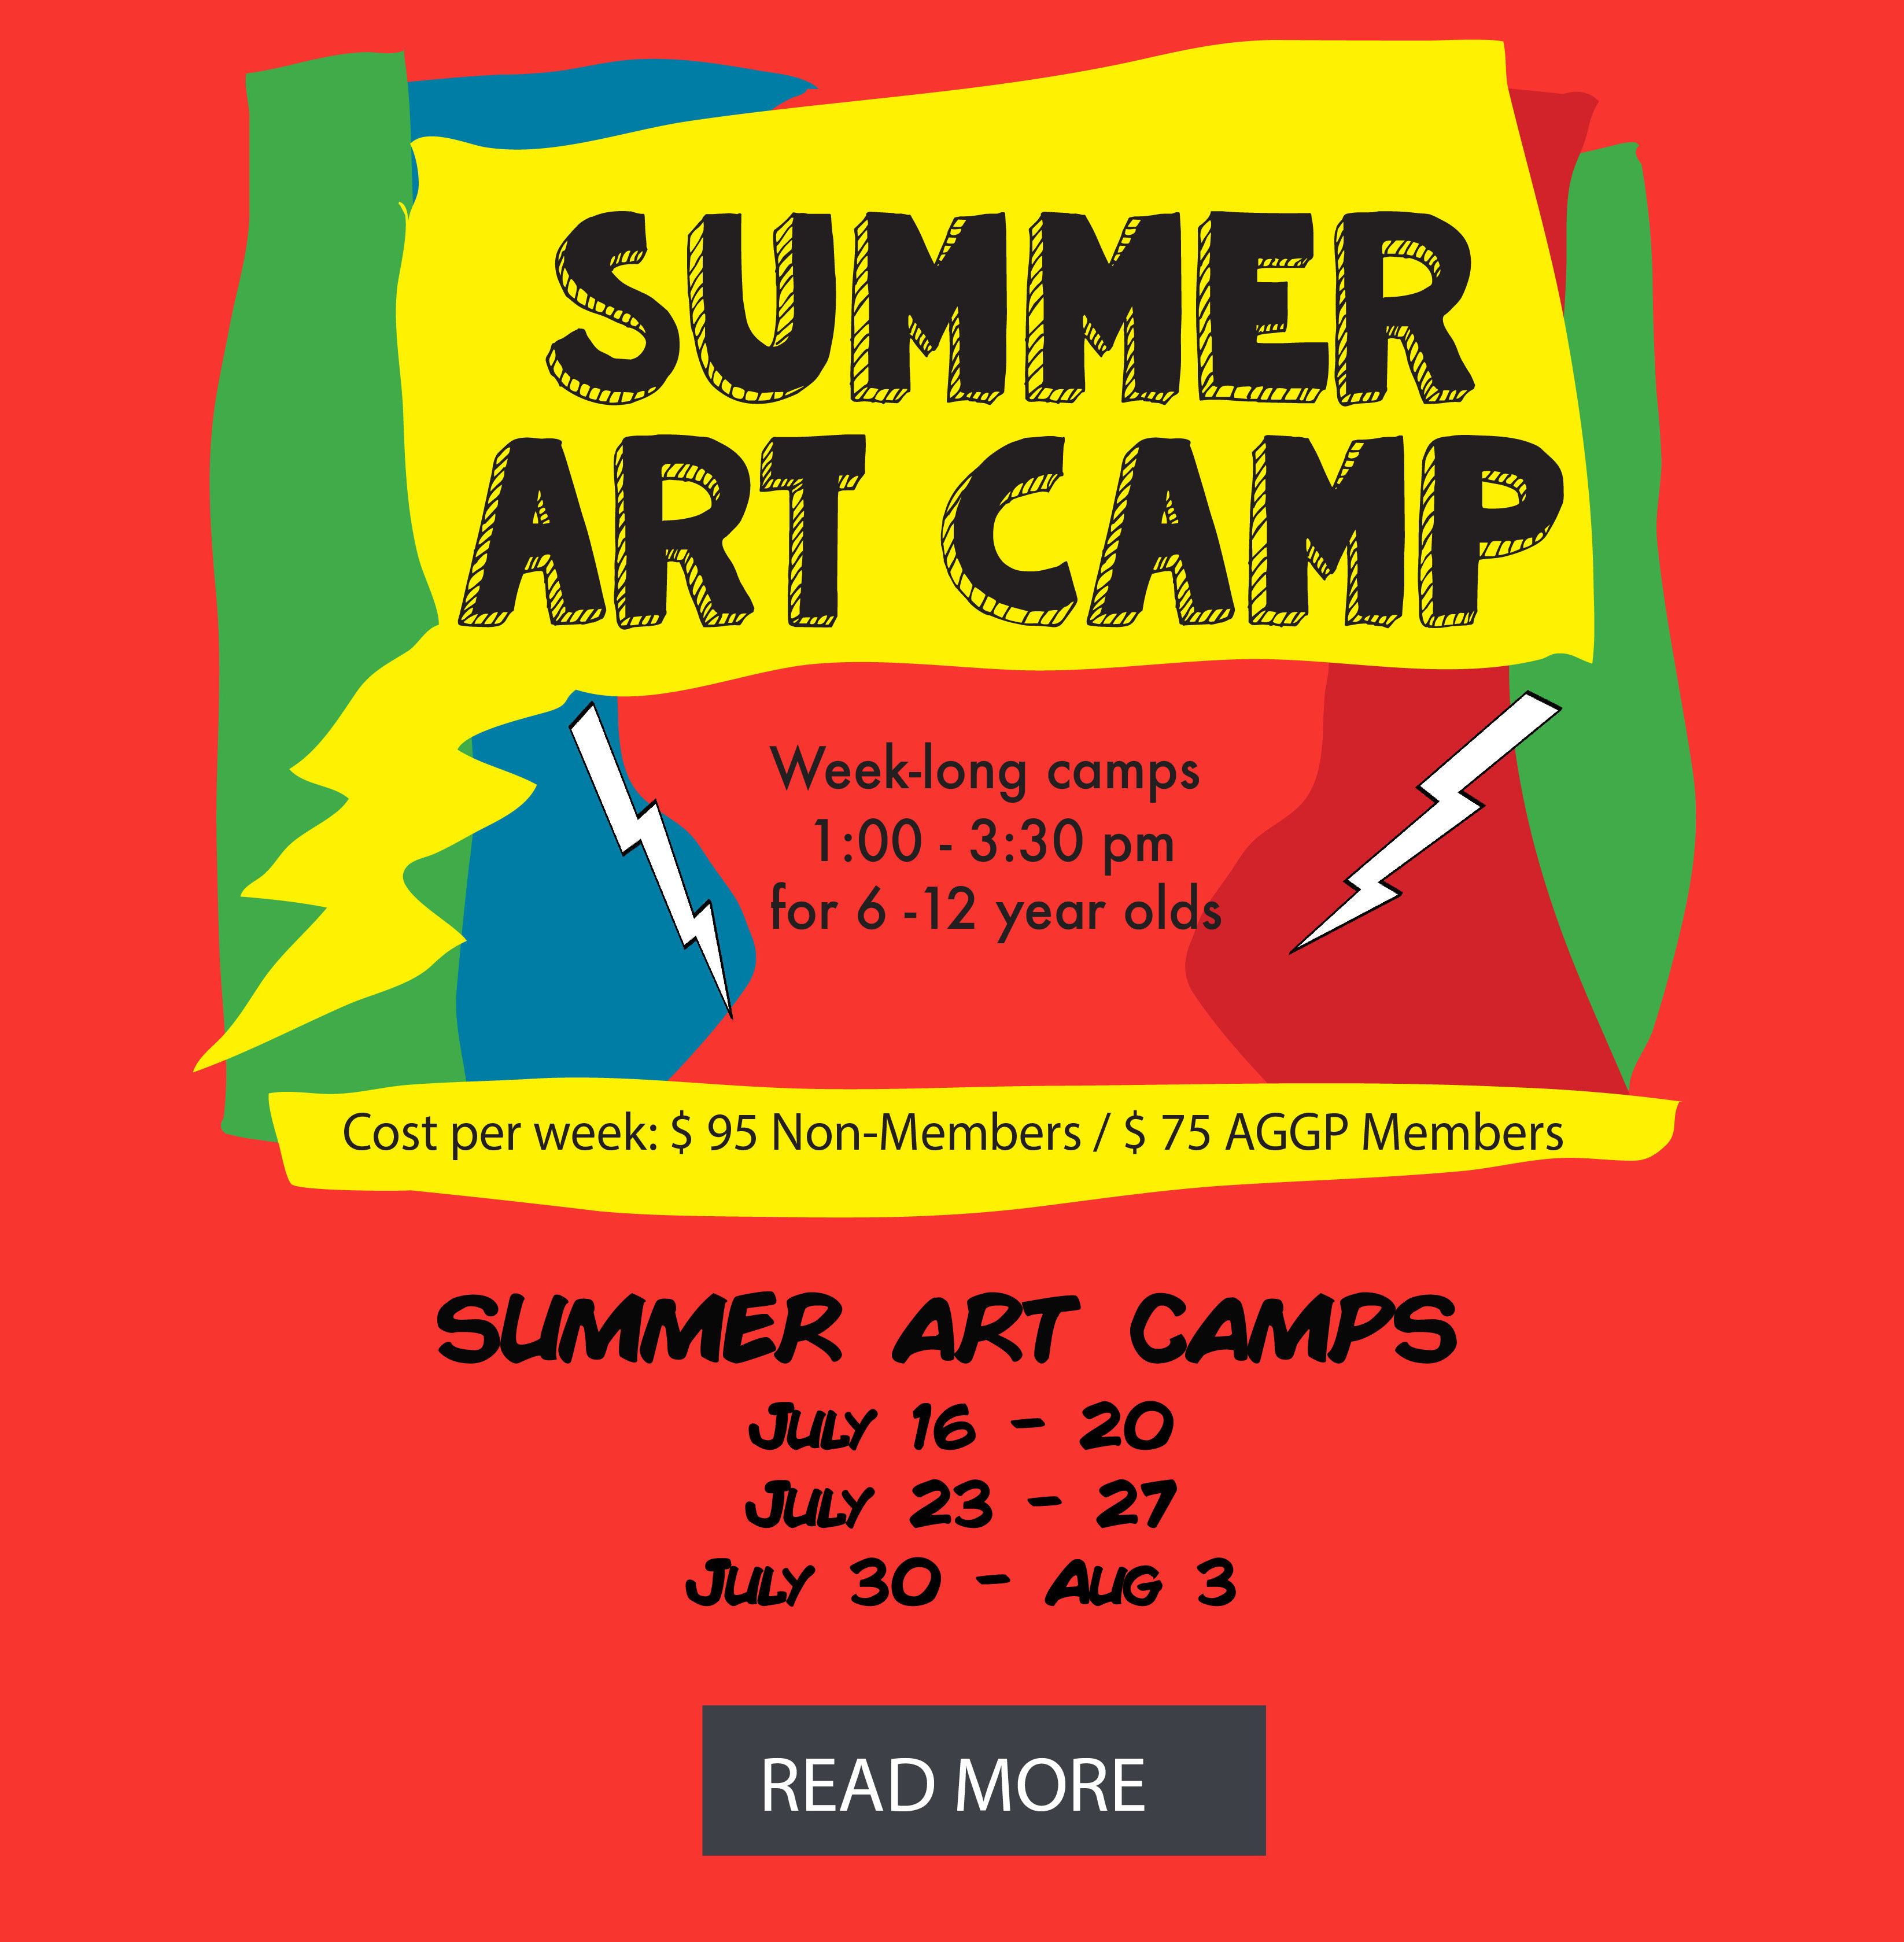 Summer Art Camp